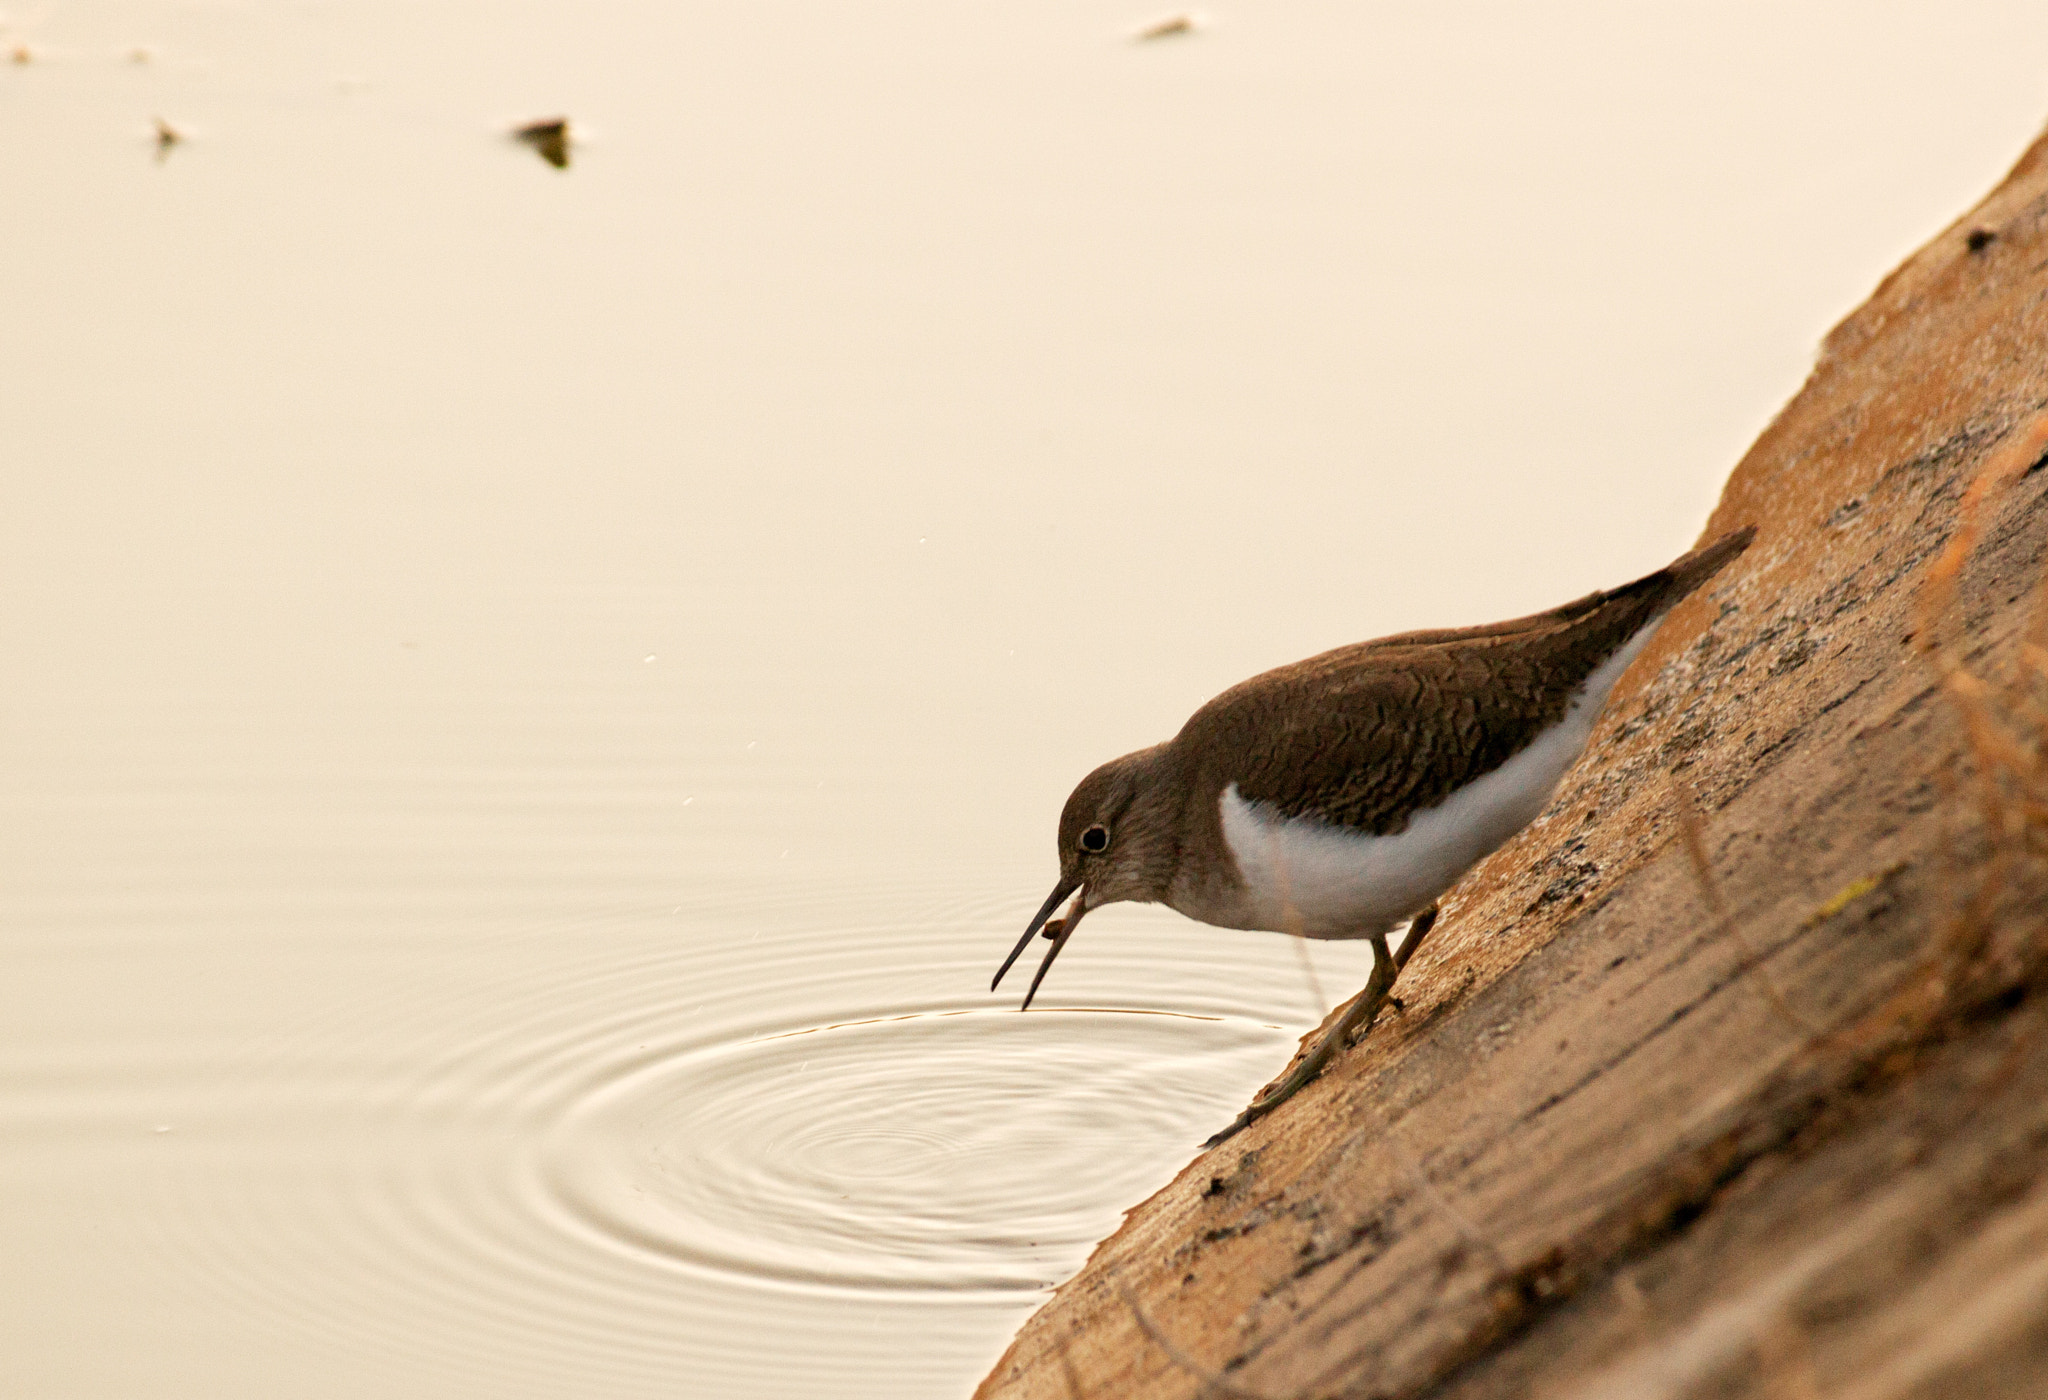 Photograph Common sandpiper. by Darshan Kansara on 500px